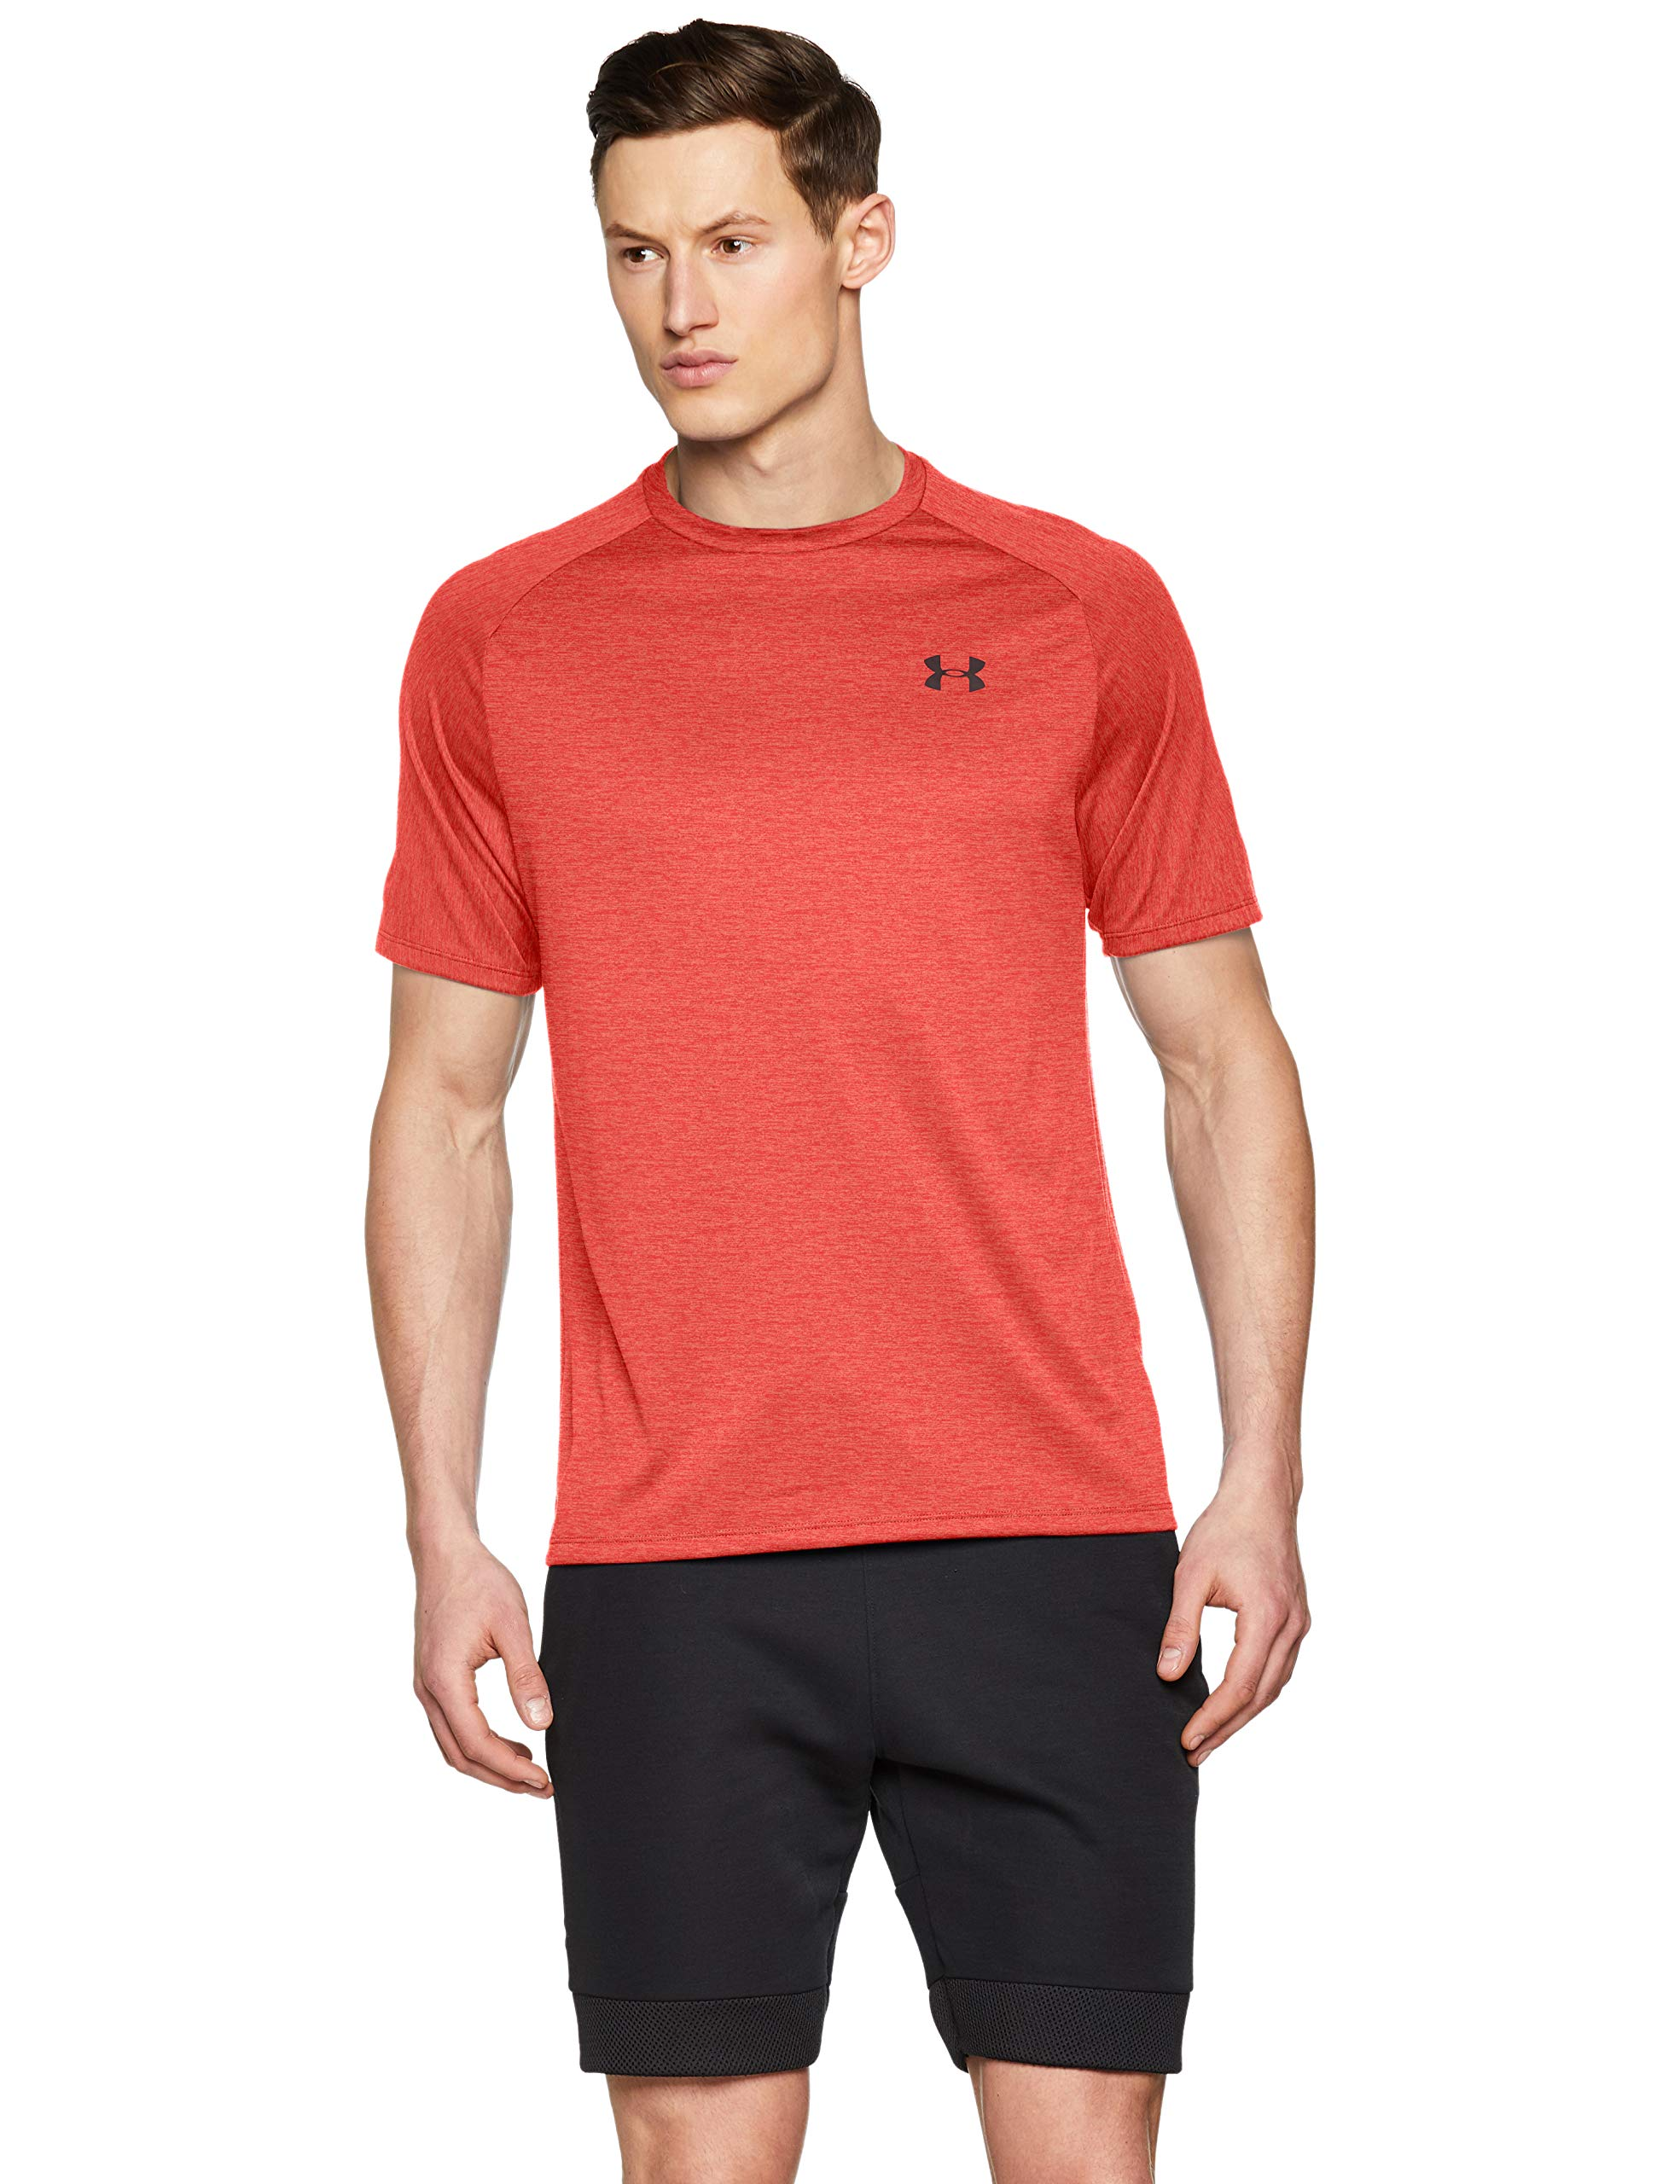 Under Armour Men's Tech 2.0 Short Sleeve T-Shirt, Barn (633)/Pitch Gray, 3X-Large by Under Armour (Image #1)